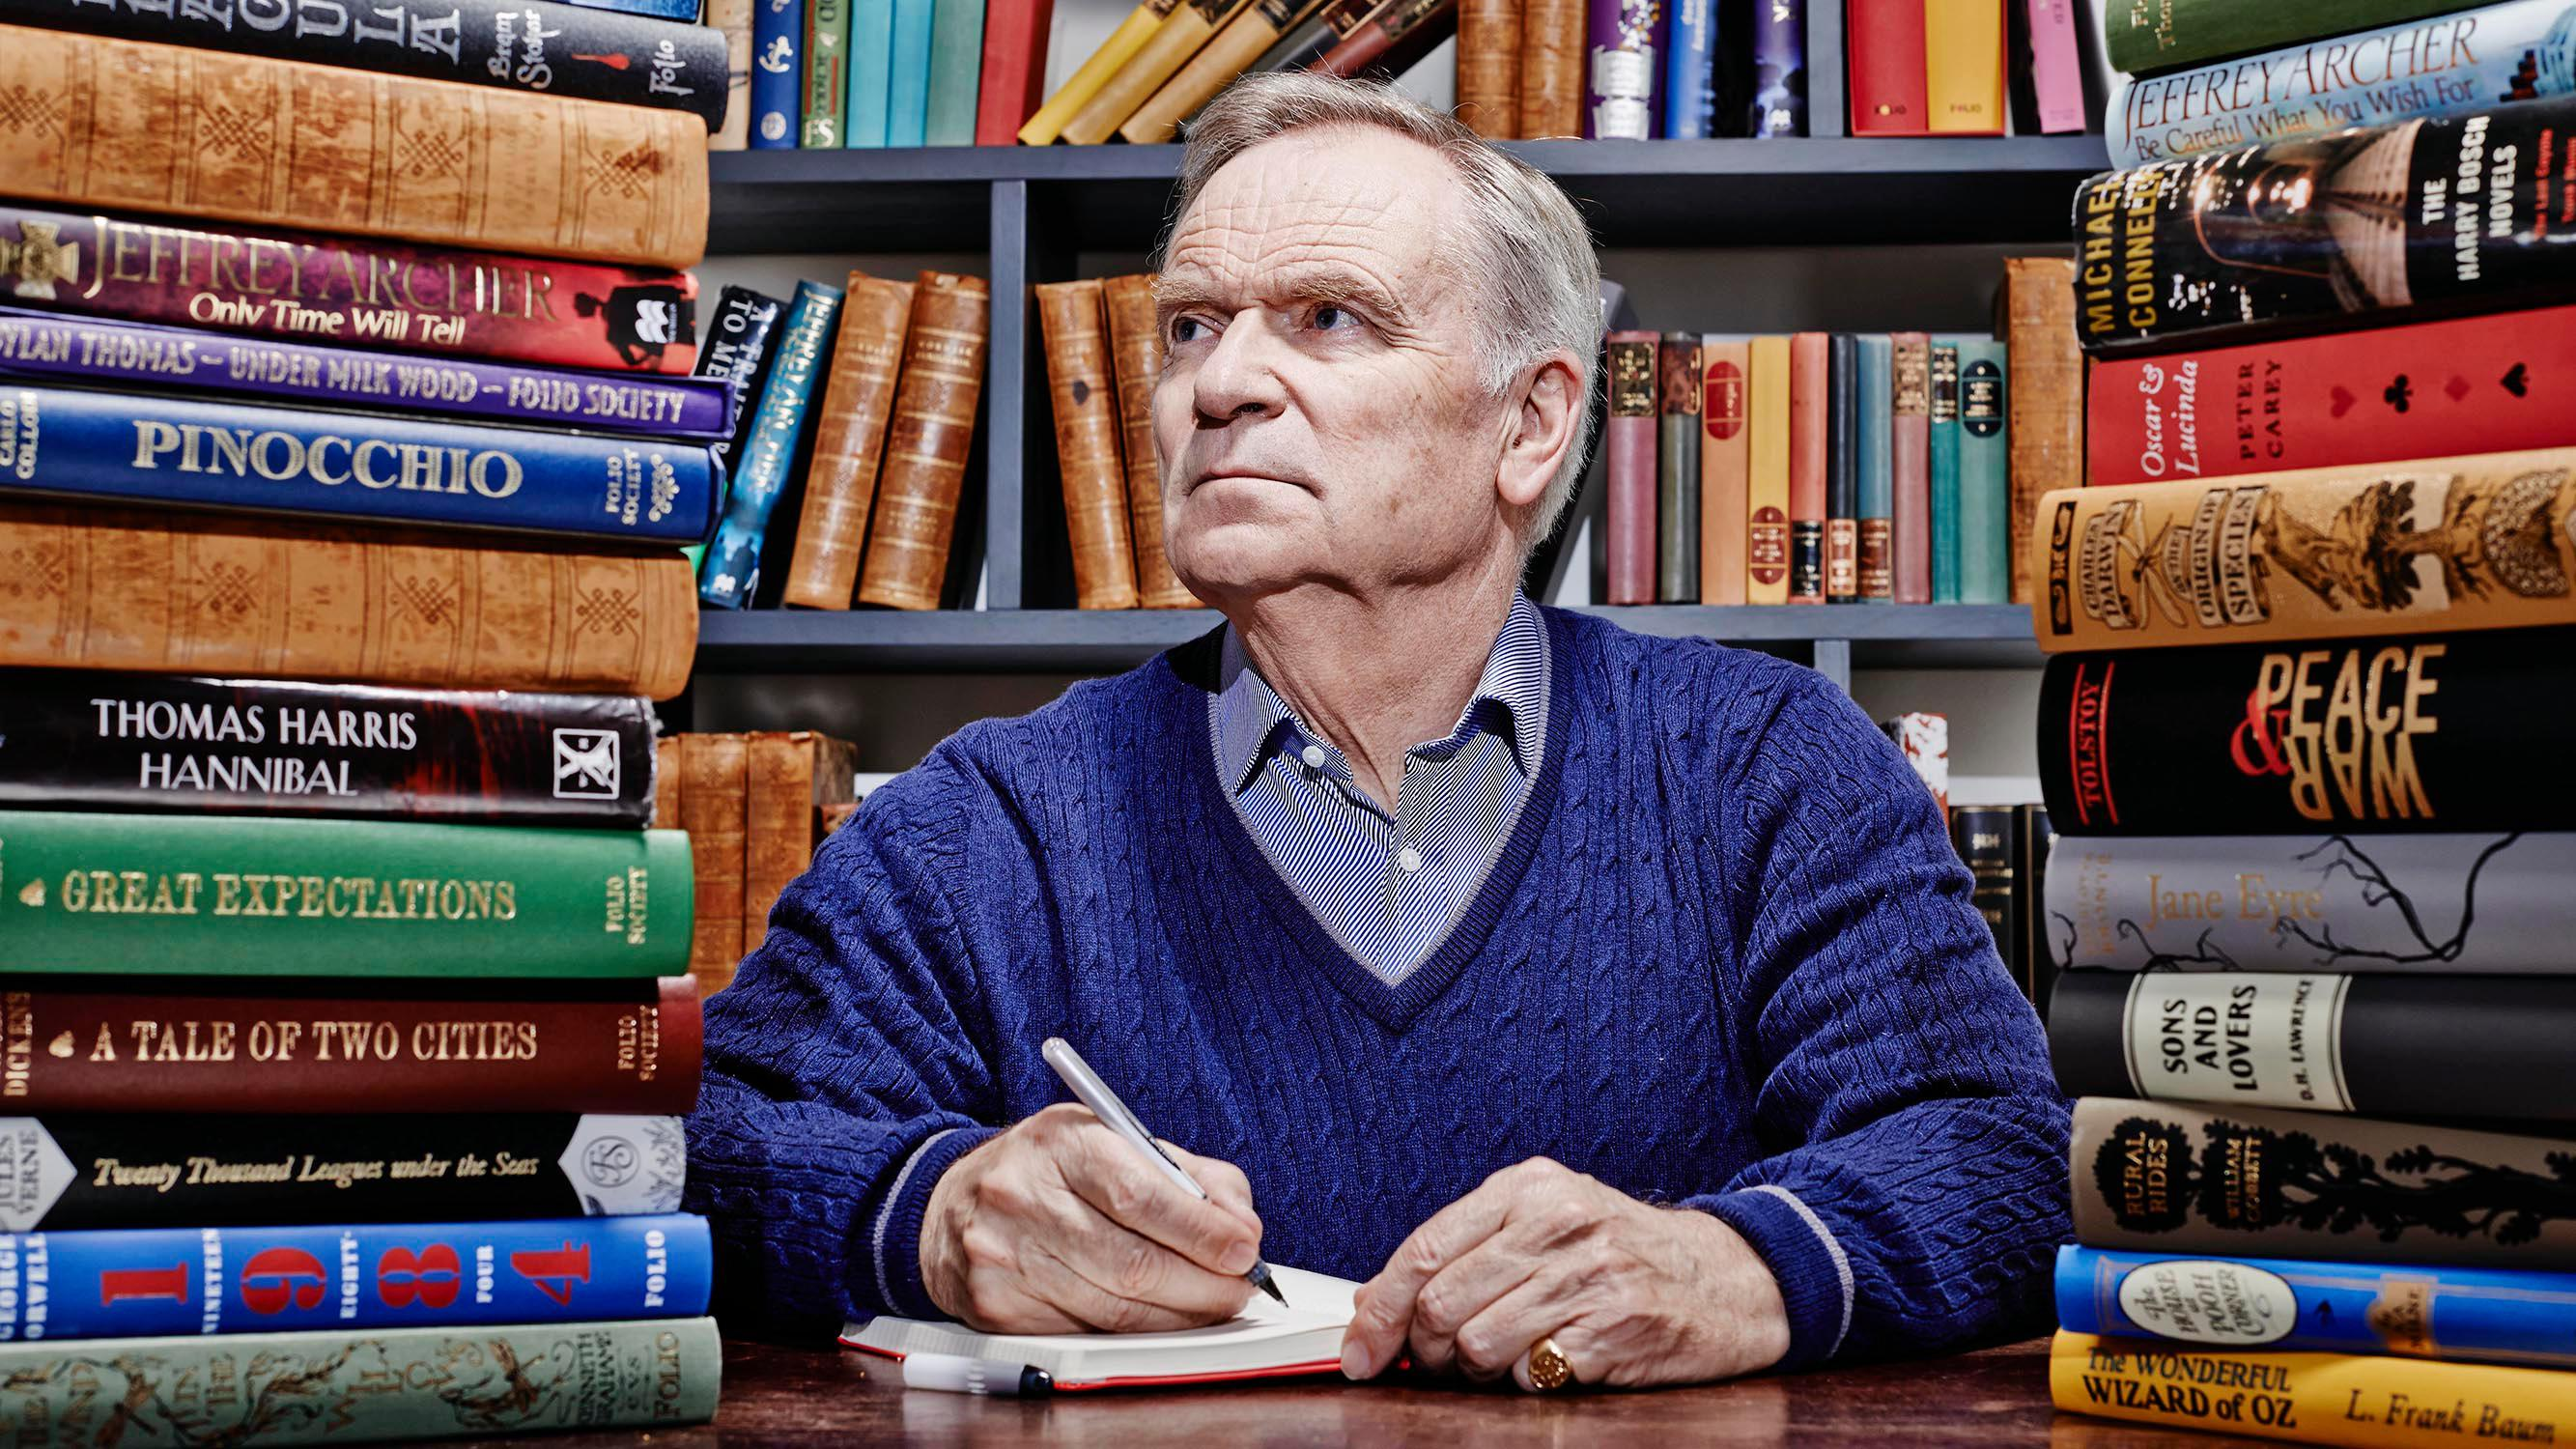 The Complete Collection of Jeffrey Archer